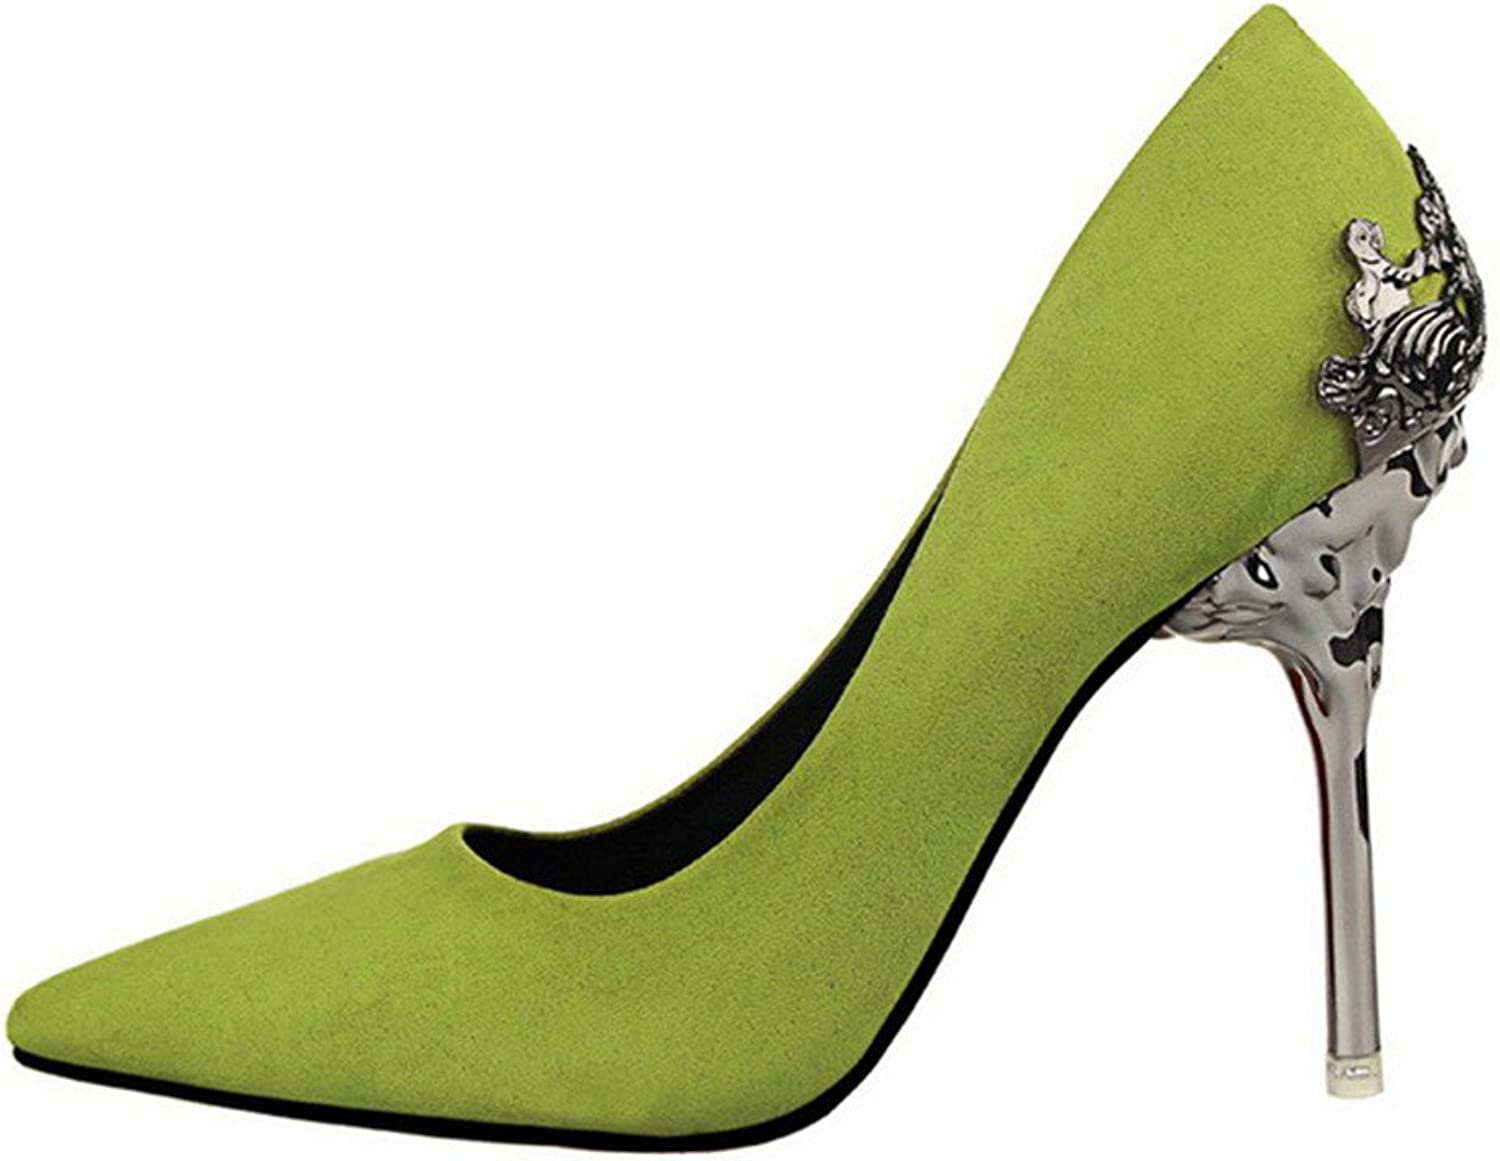 Lady's Pointed-toe pump shoes Green color